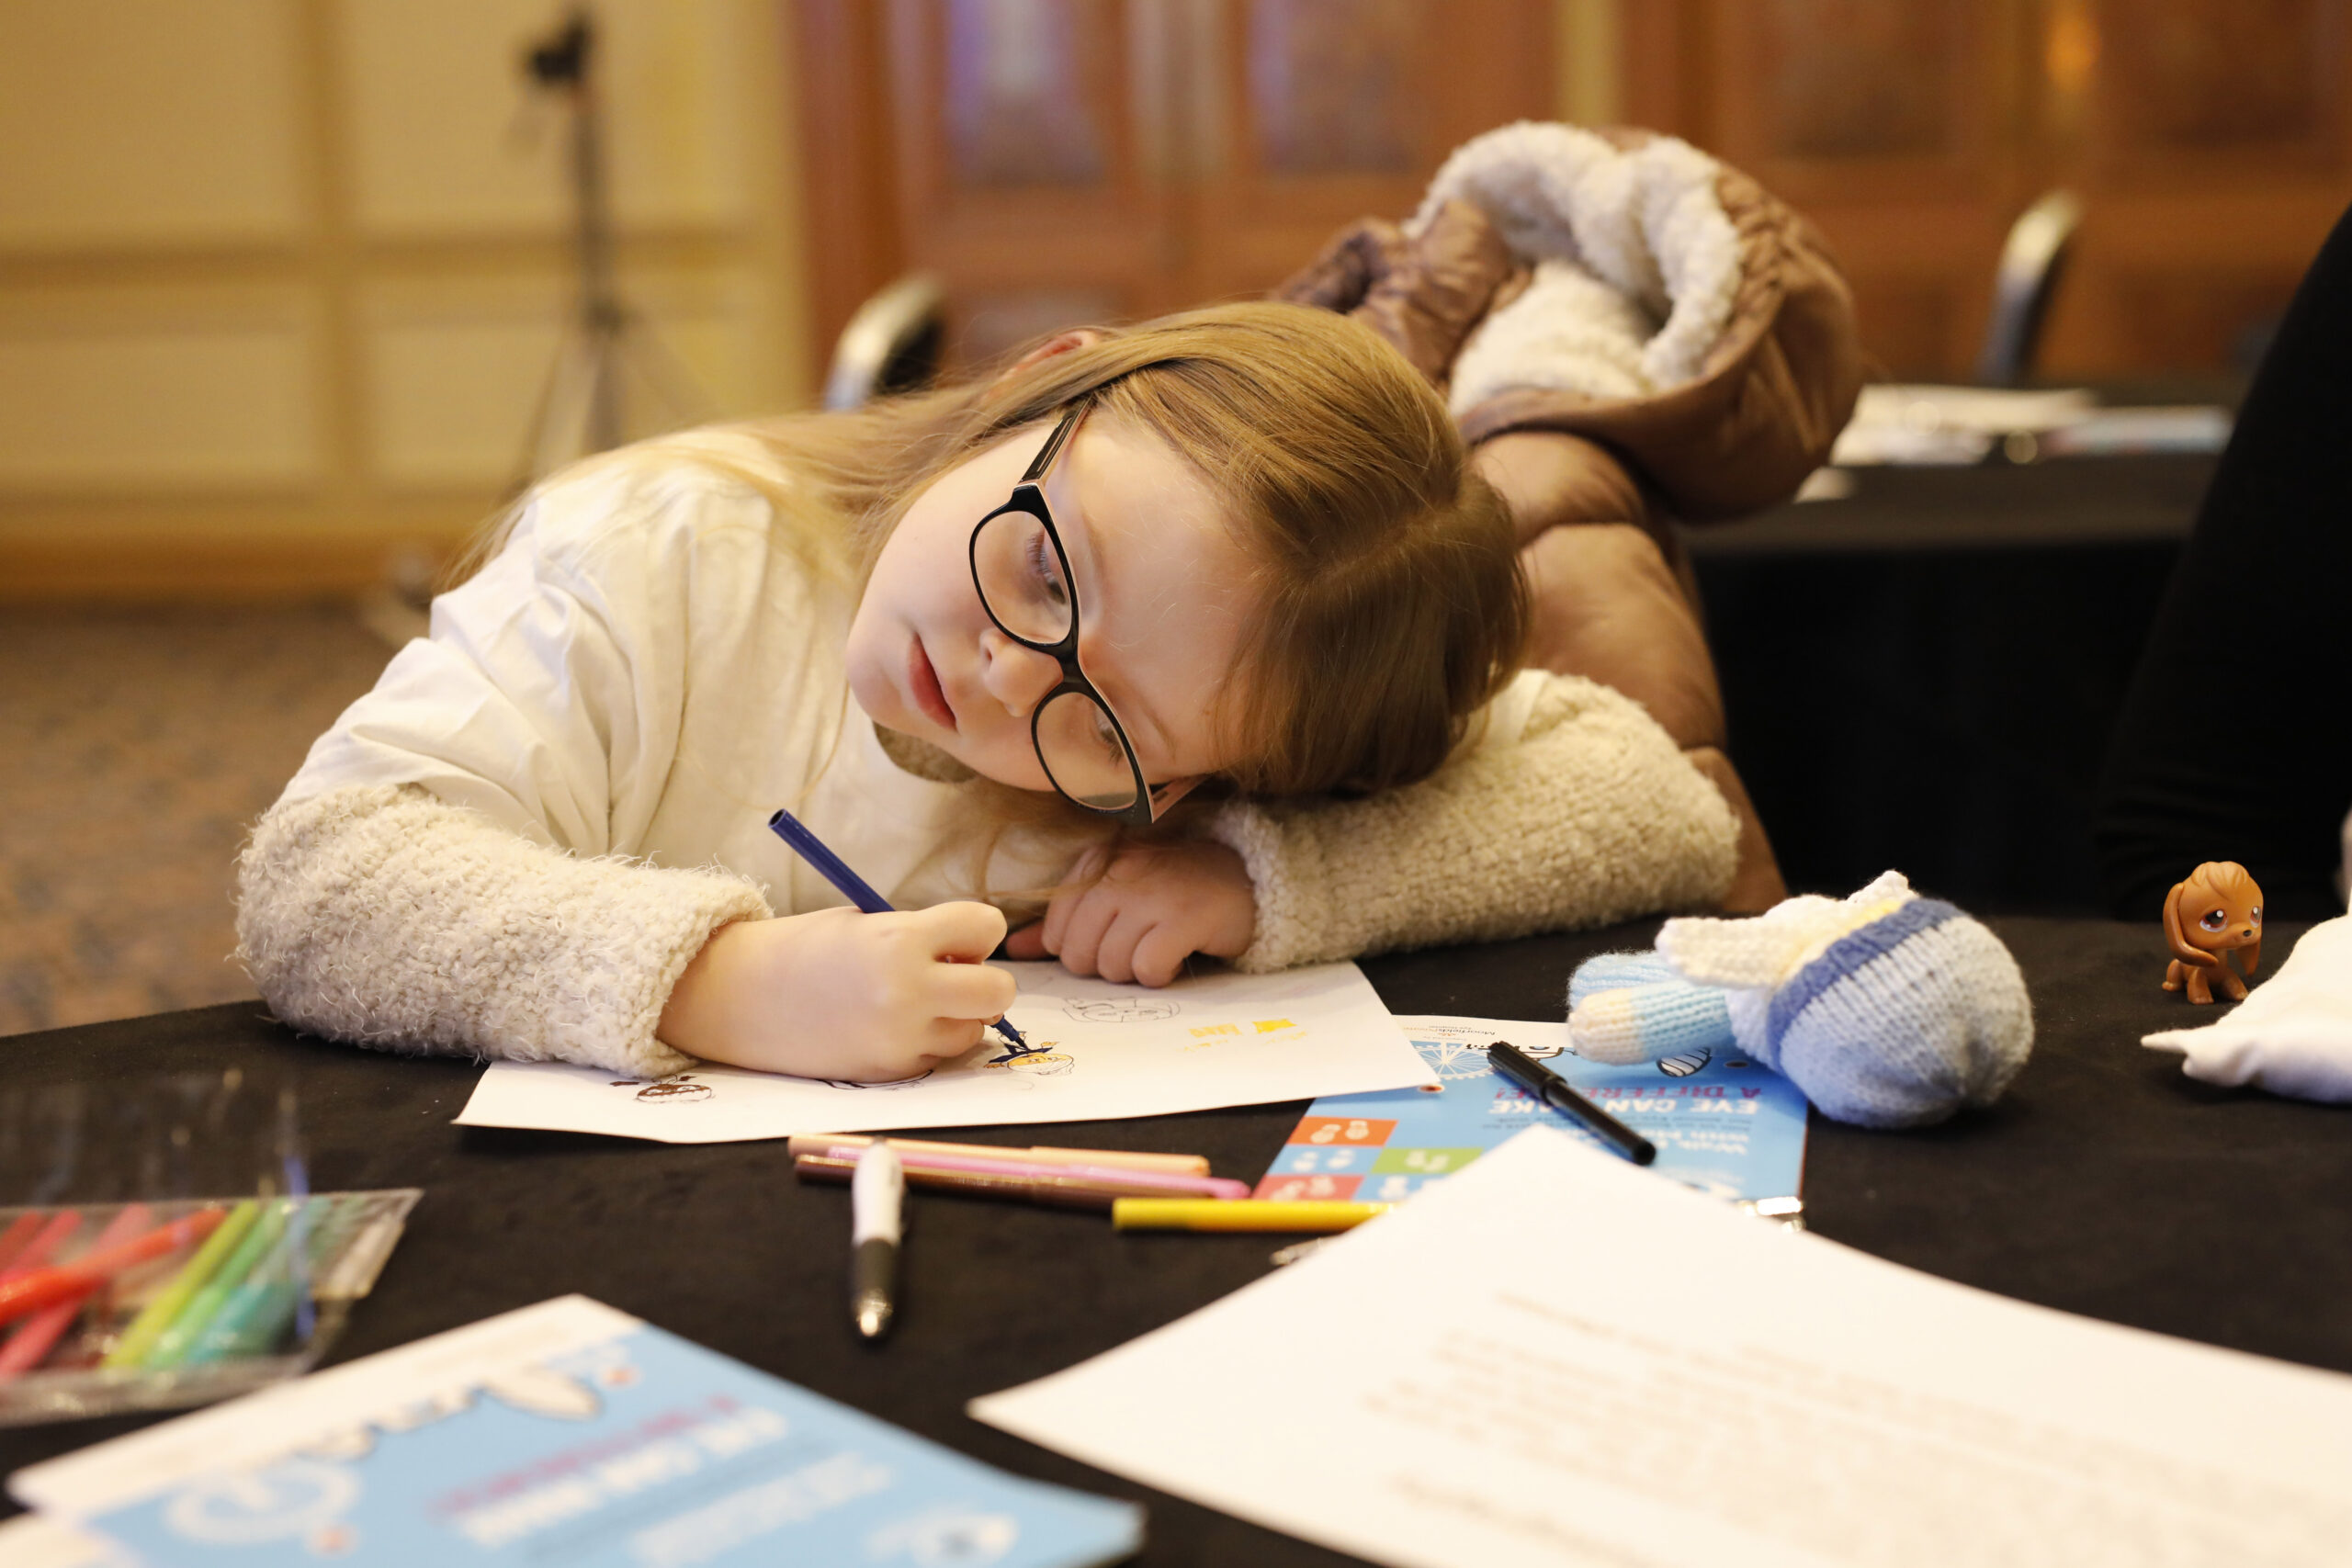 A child wearing glasses using her nullpoint as she writes.